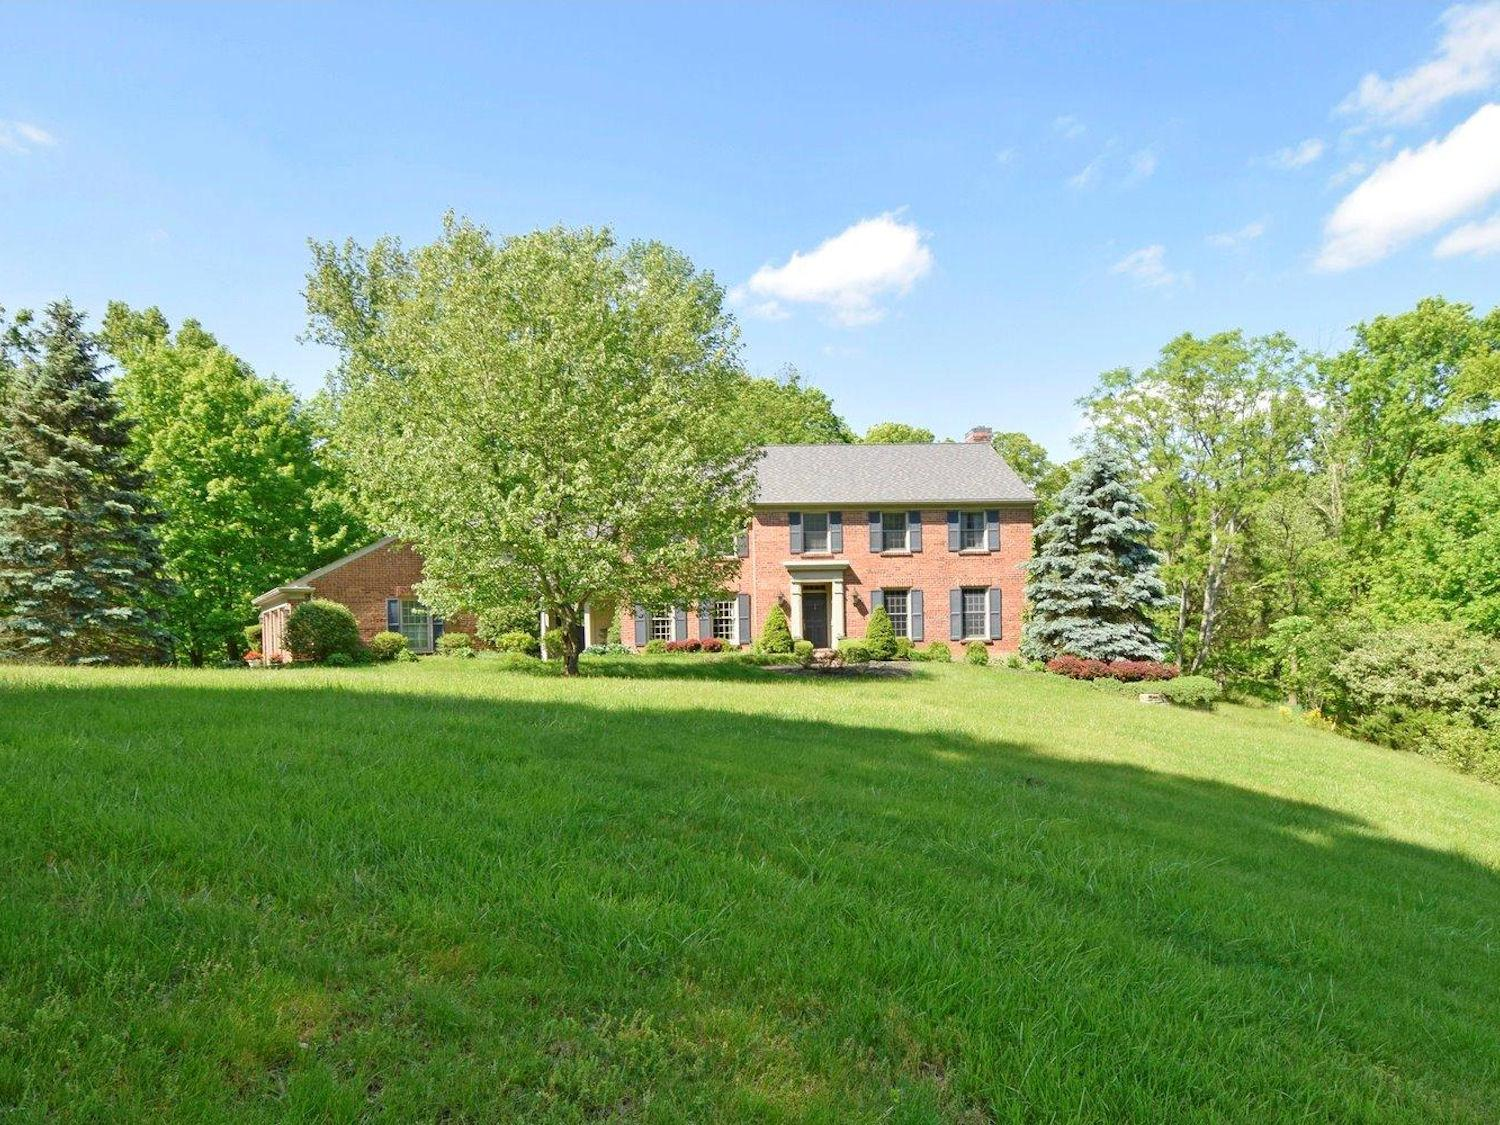 9260 Old Indian Hill Road, Indian Hill, OH 45243